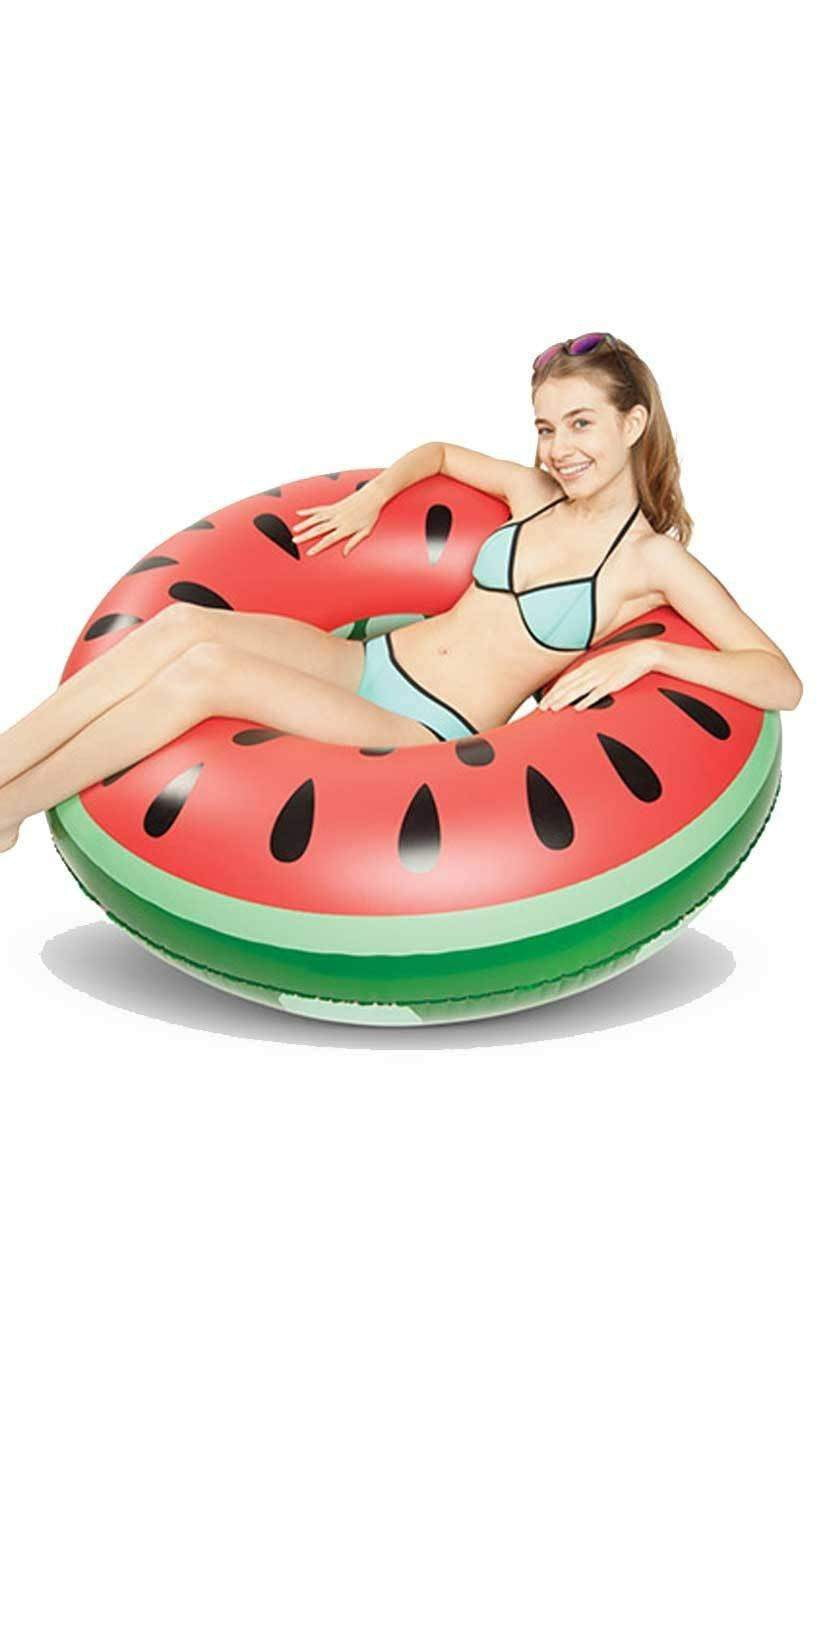 Big Mouth Giant Watermelon Slice Float BMPF-0006: